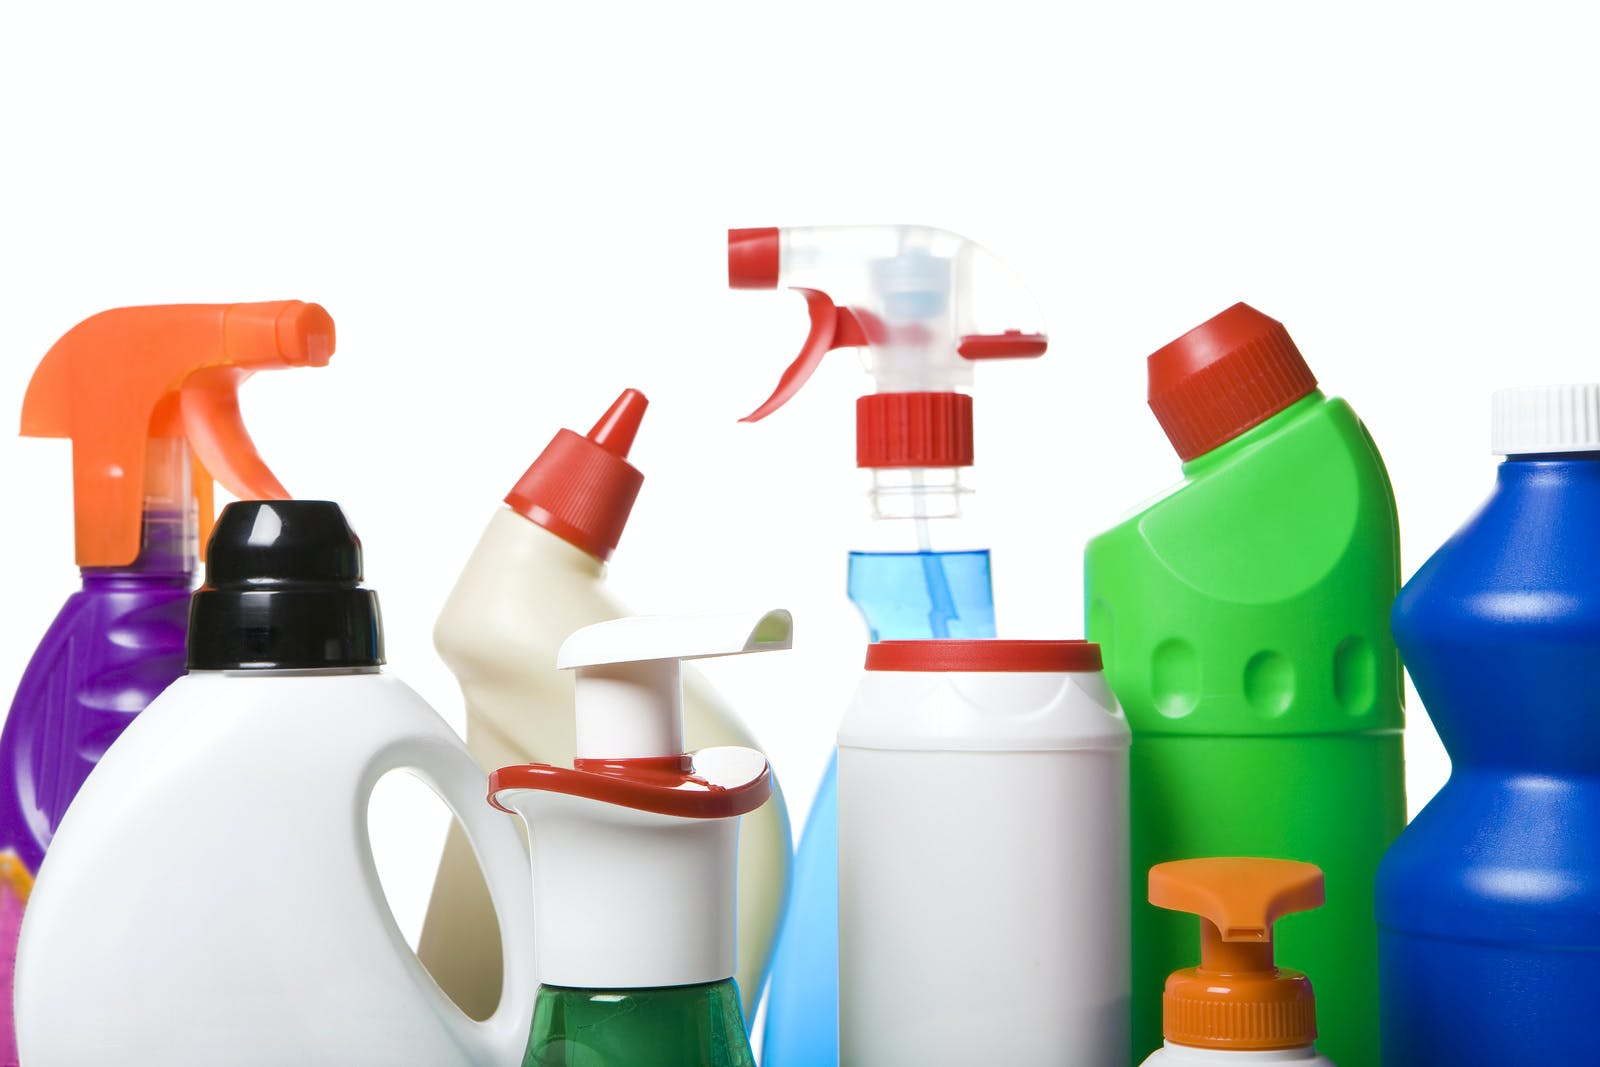 Collection of hygiene cleaners for housework, photo detail